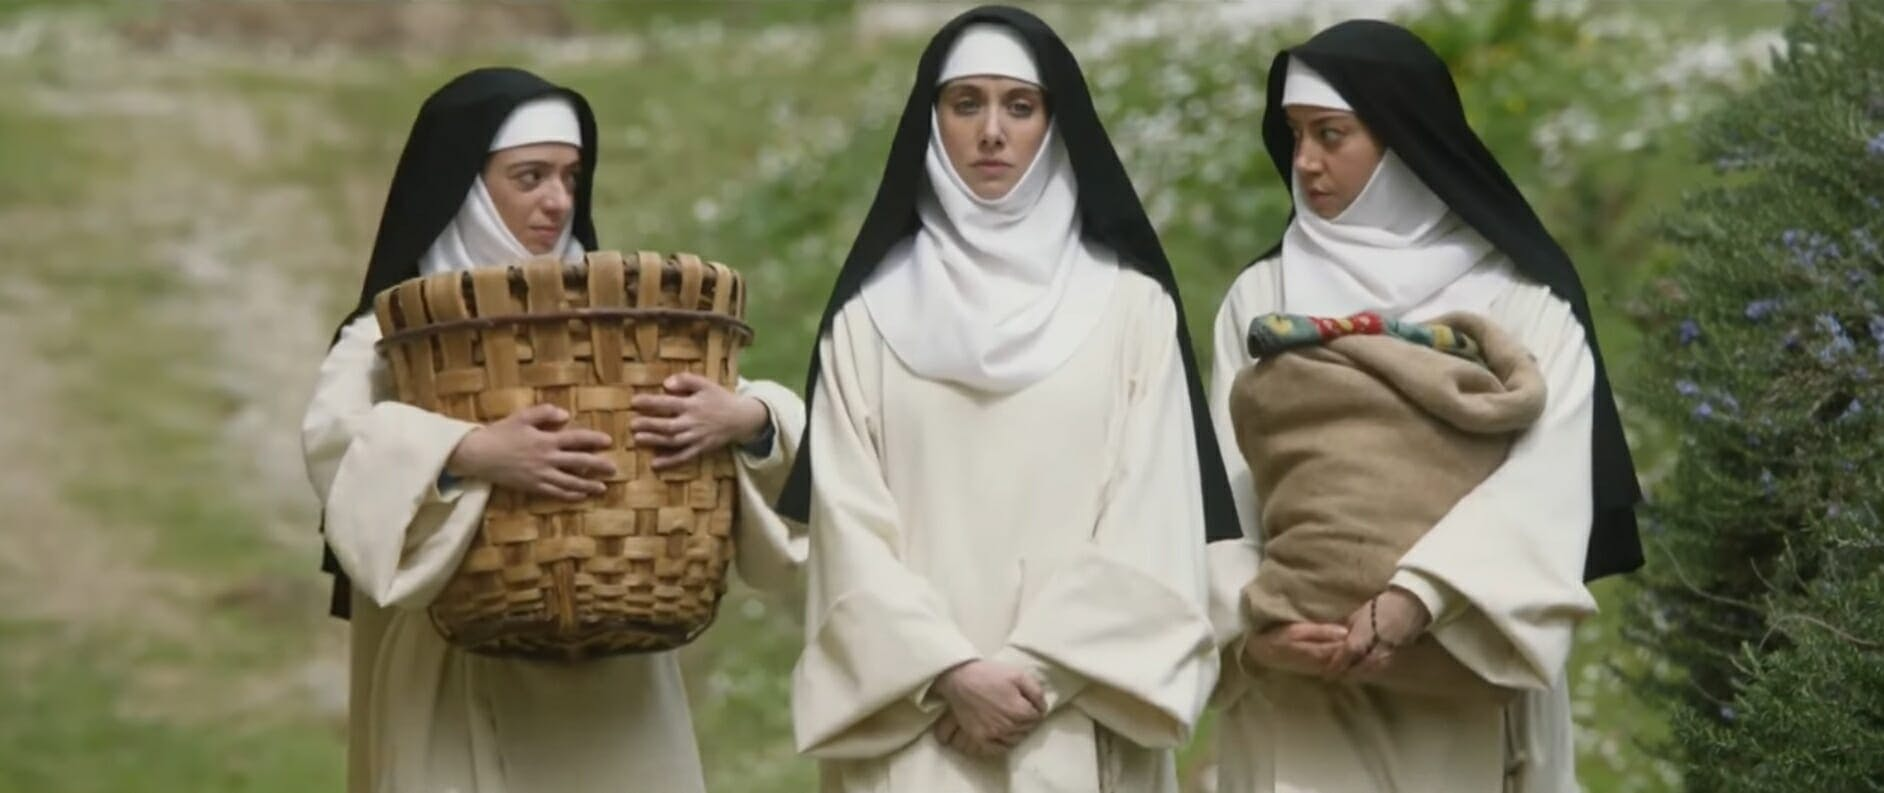 best comedy movies on amazon prime - the little hours